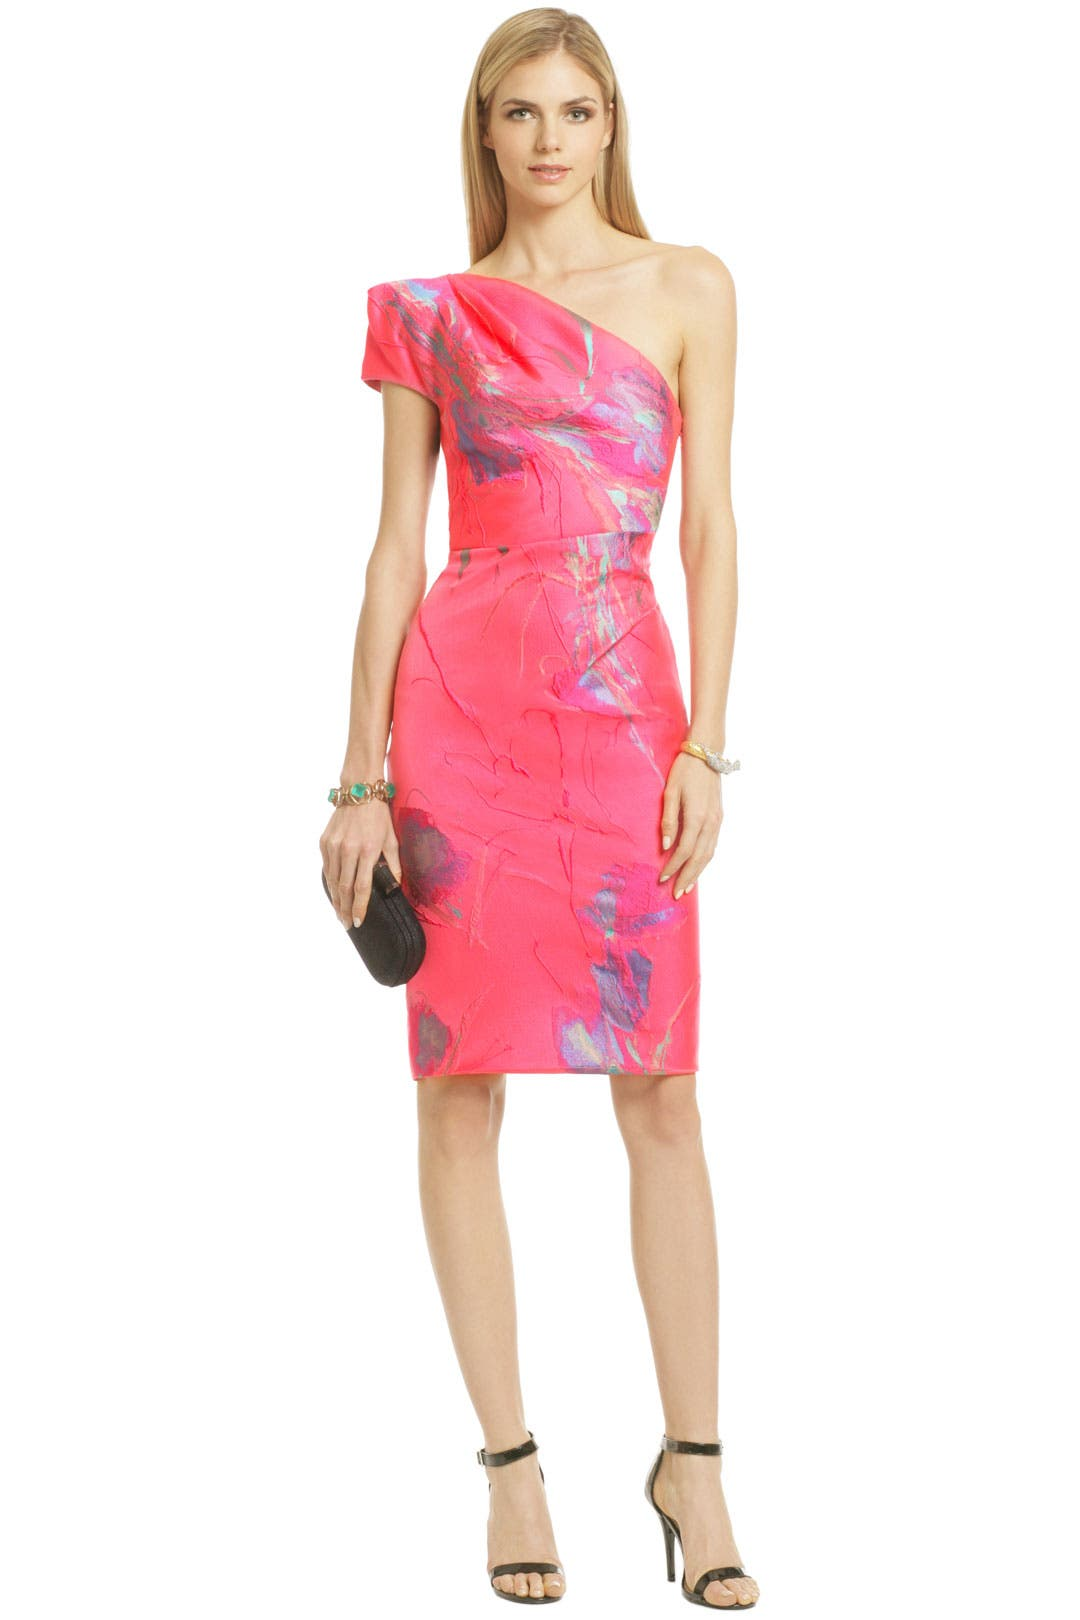 That Feminine Touch Dress by Lela Rose